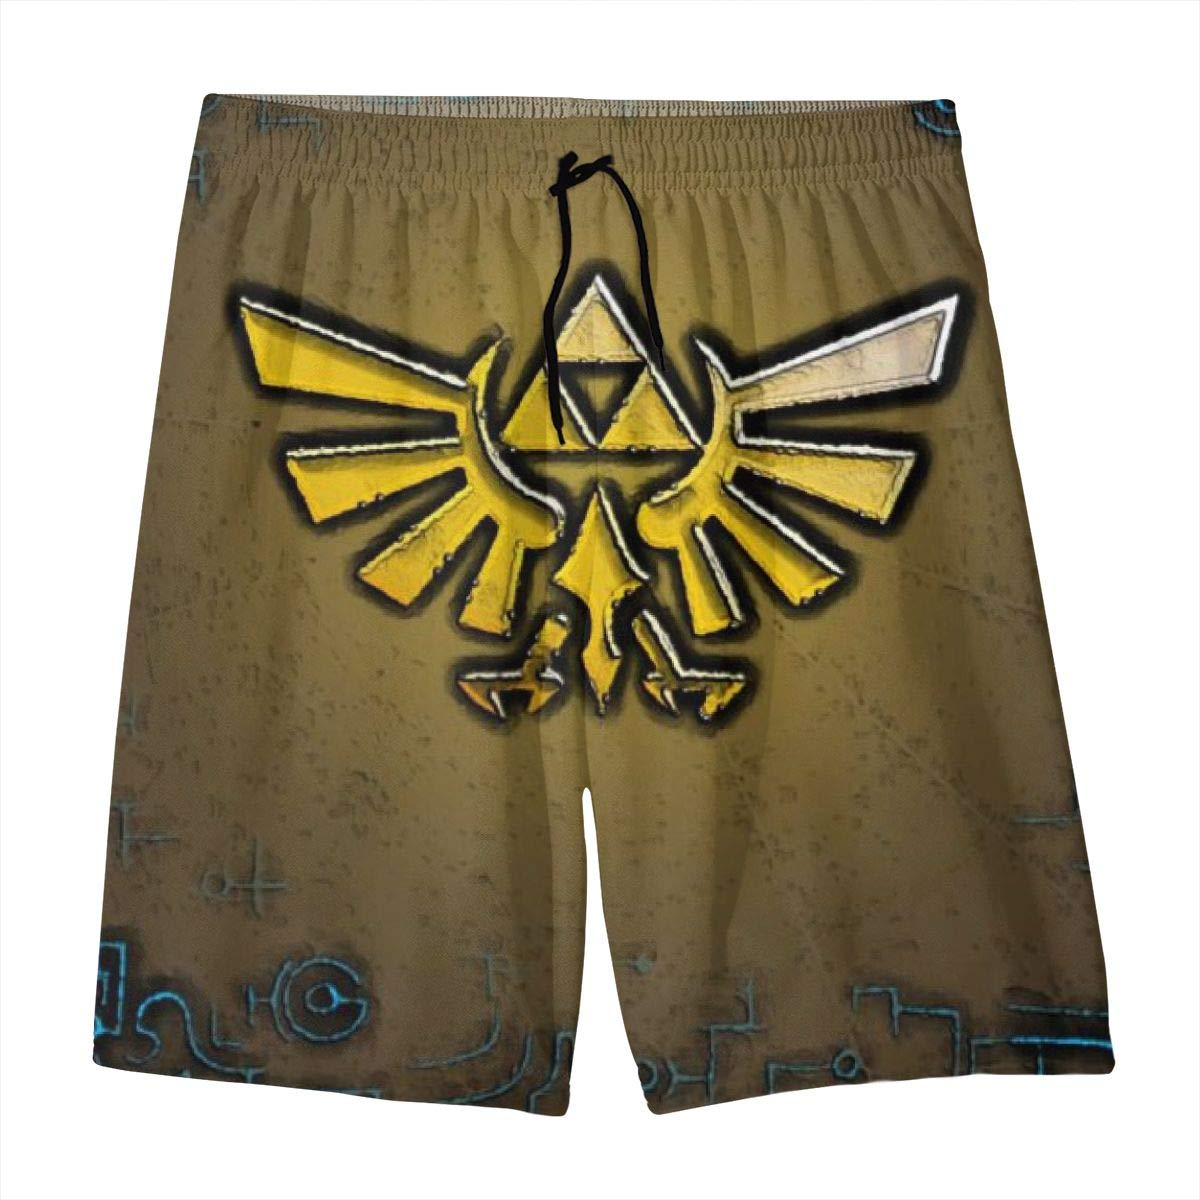 KSFKE Zelda Teens Beach Board Shorts Quick Dry Bathing Suits Swim Trunks Shorts